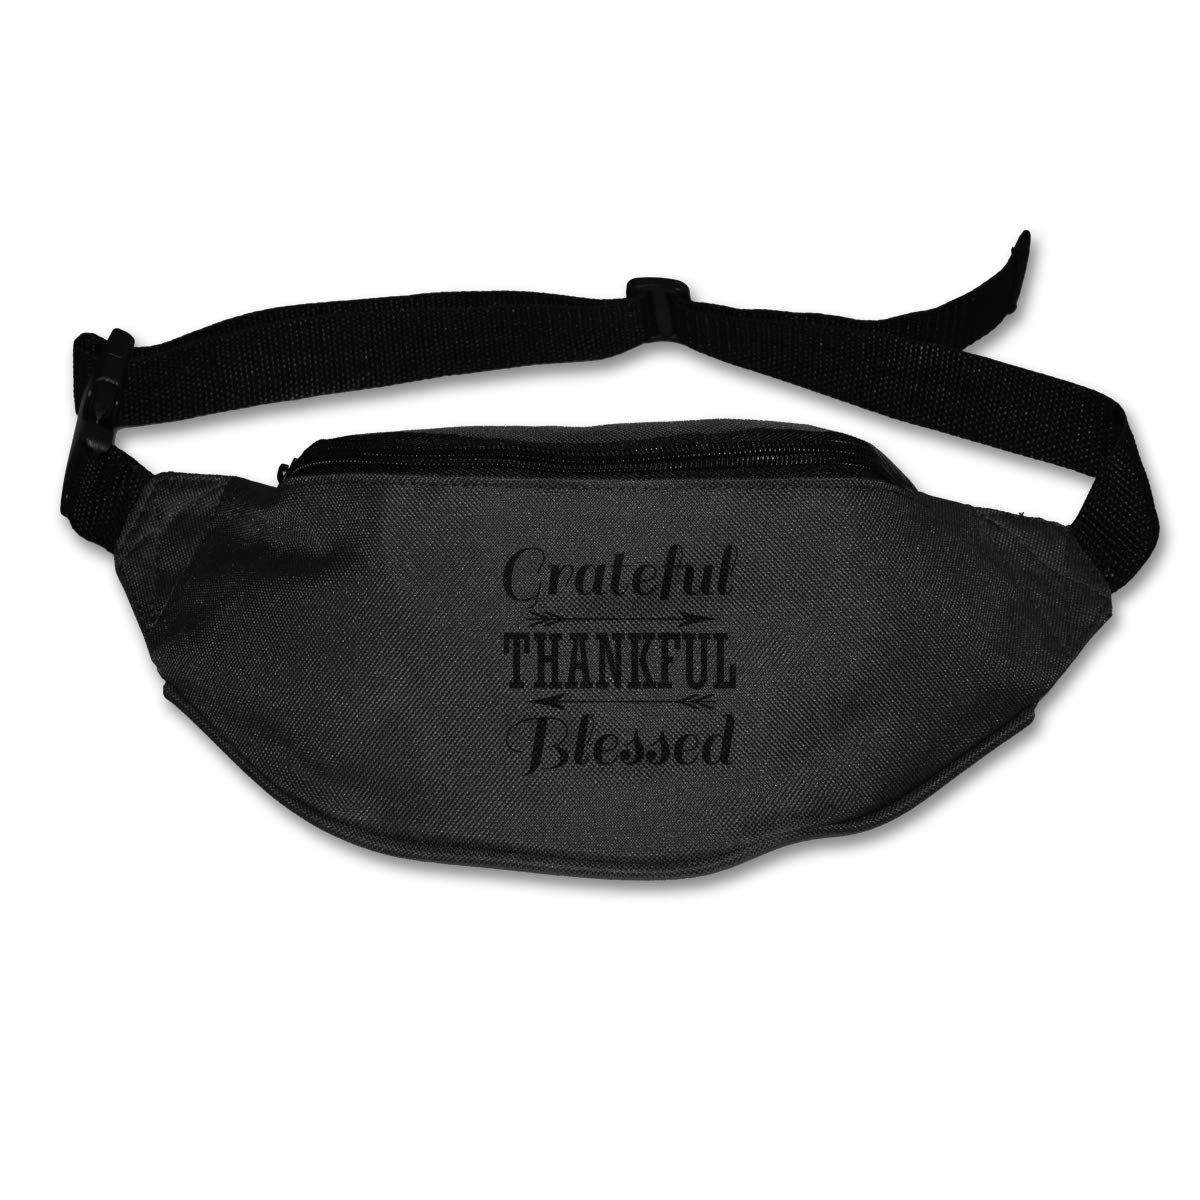 Grateful Thankful Blessed Sport Waist Pack Fanny Pack Adjustable For Hike